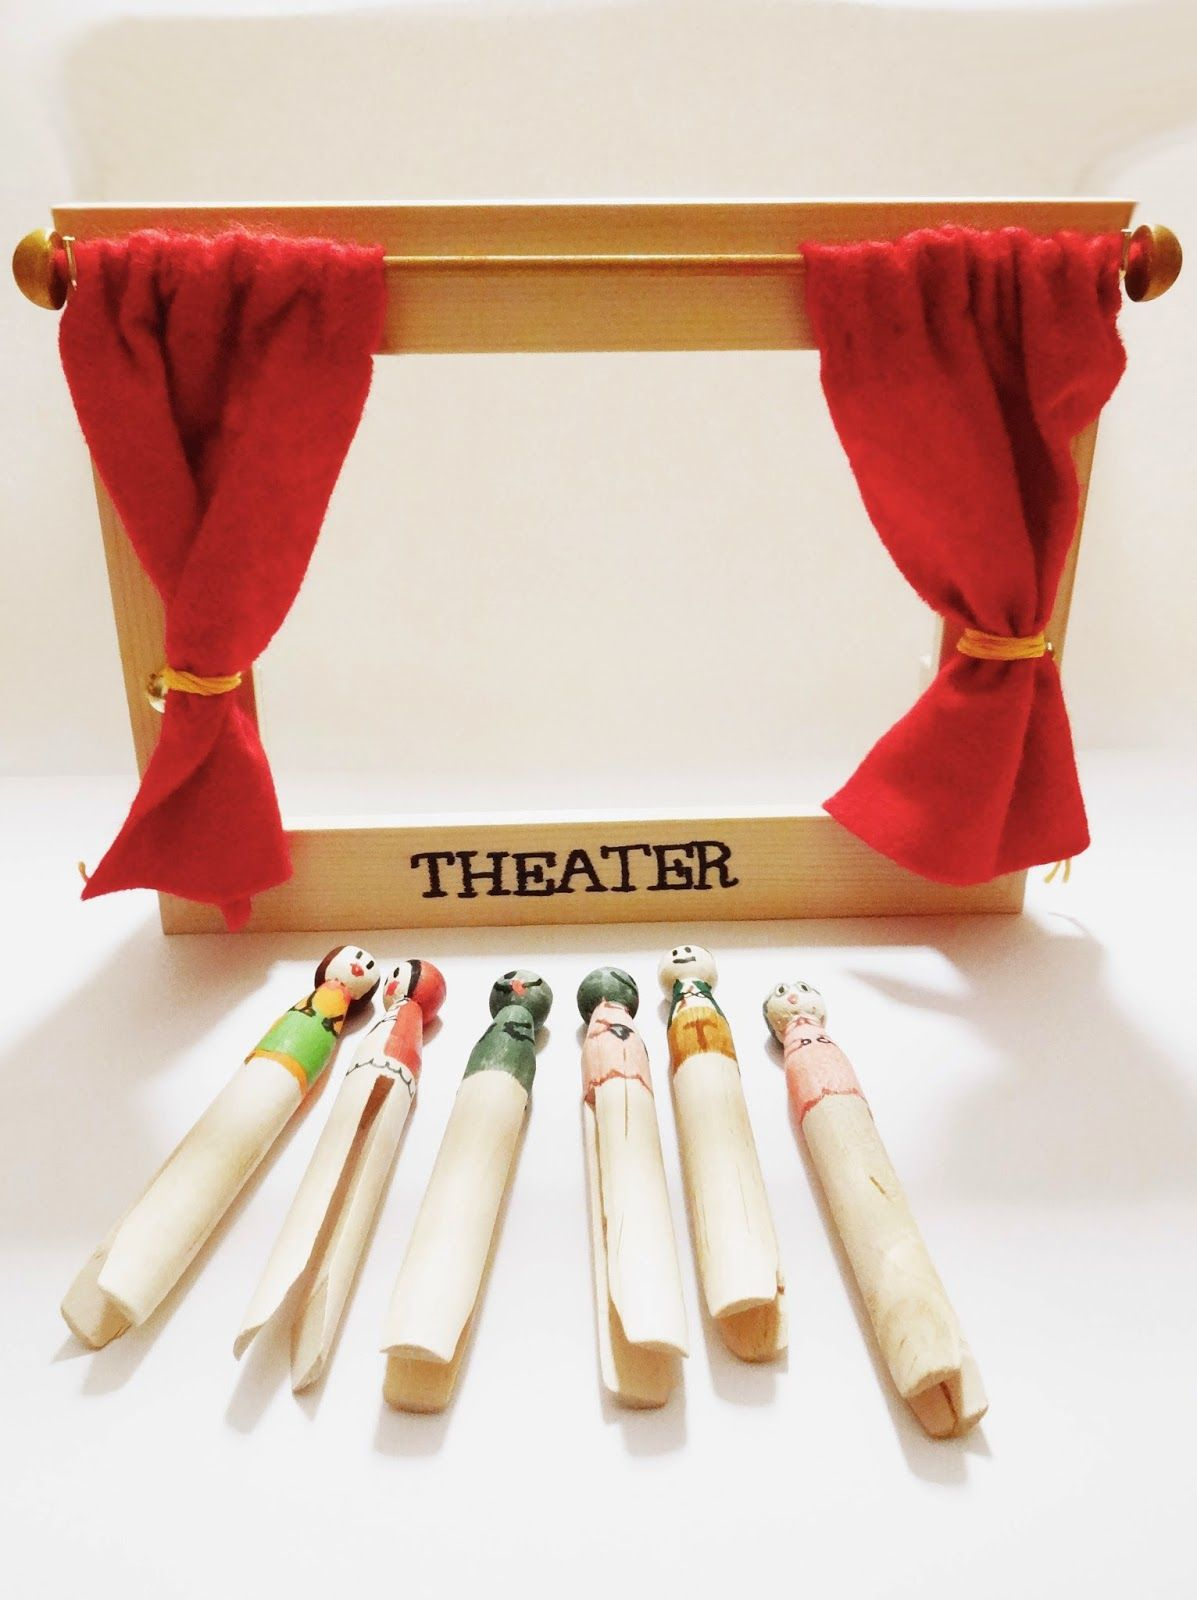 basteln malen kuchen backen mini puppentheater tischtheater pinterest puppentheater. Black Bedroom Furniture Sets. Home Design Ideas